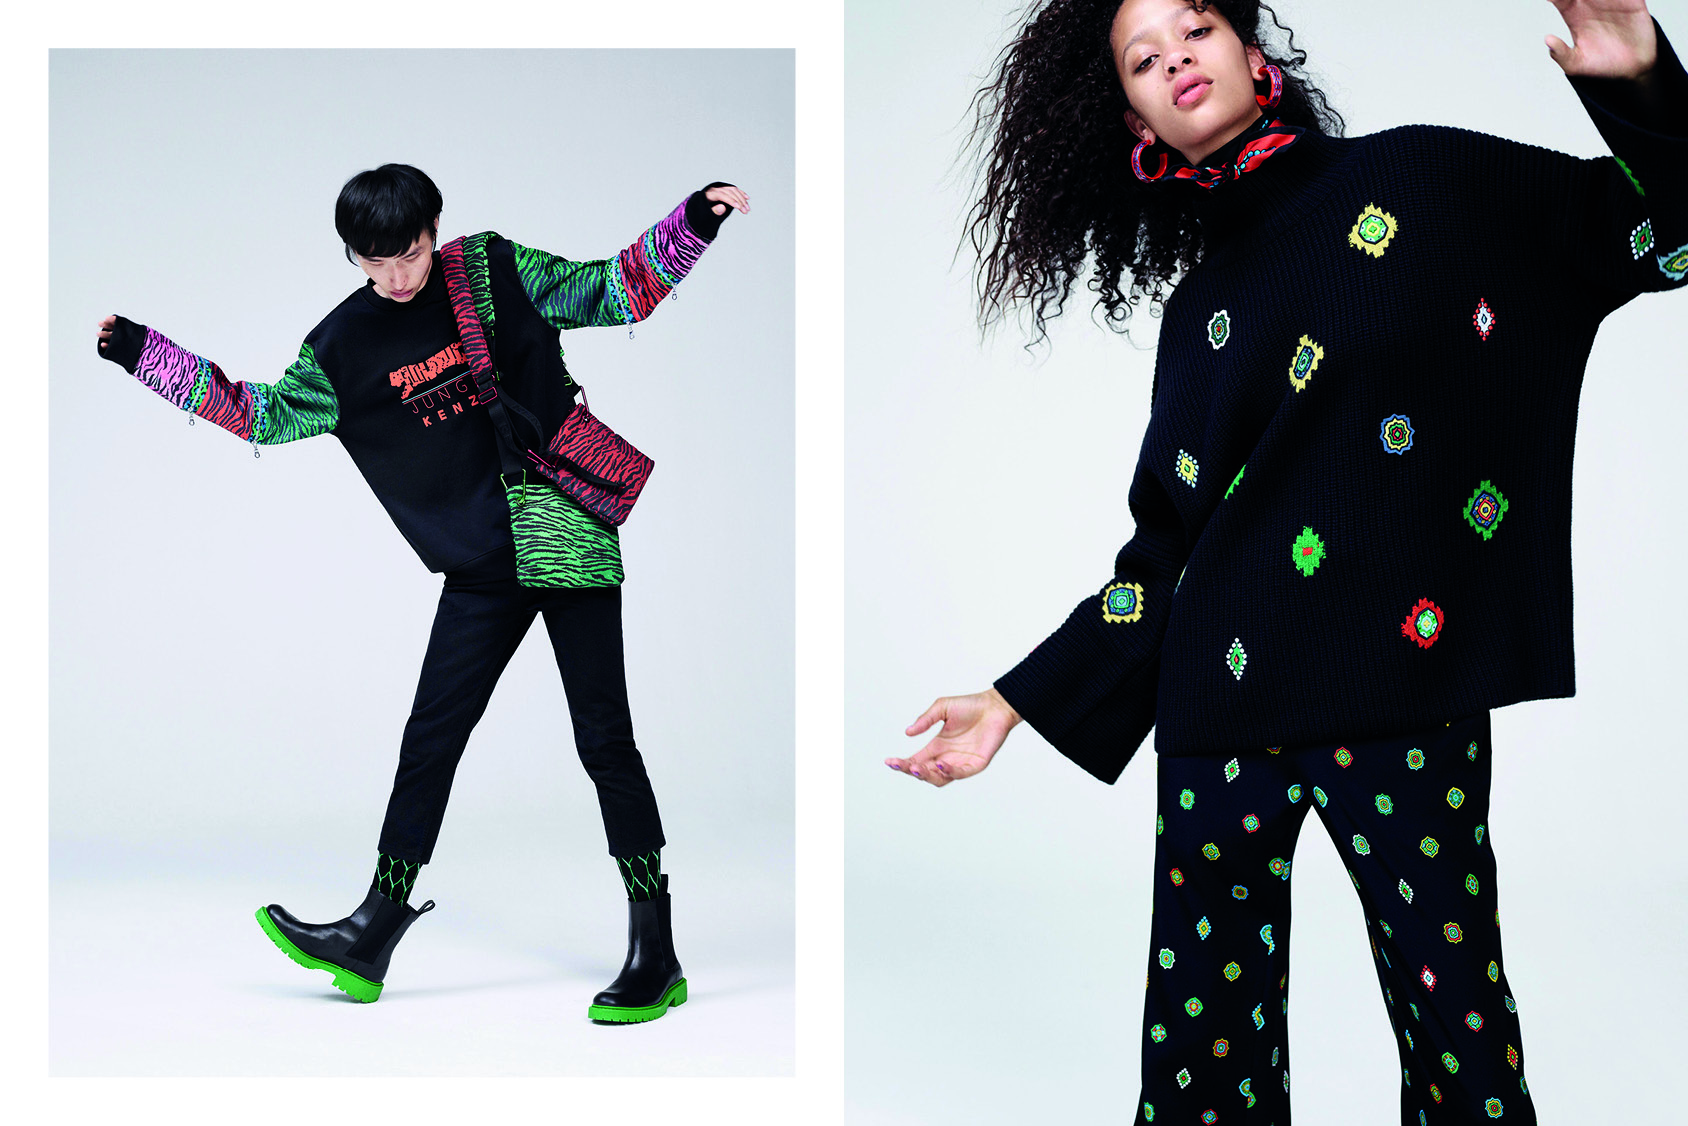 oktb3-16-a-tl-inside-kenzo-story-behind-the-collection